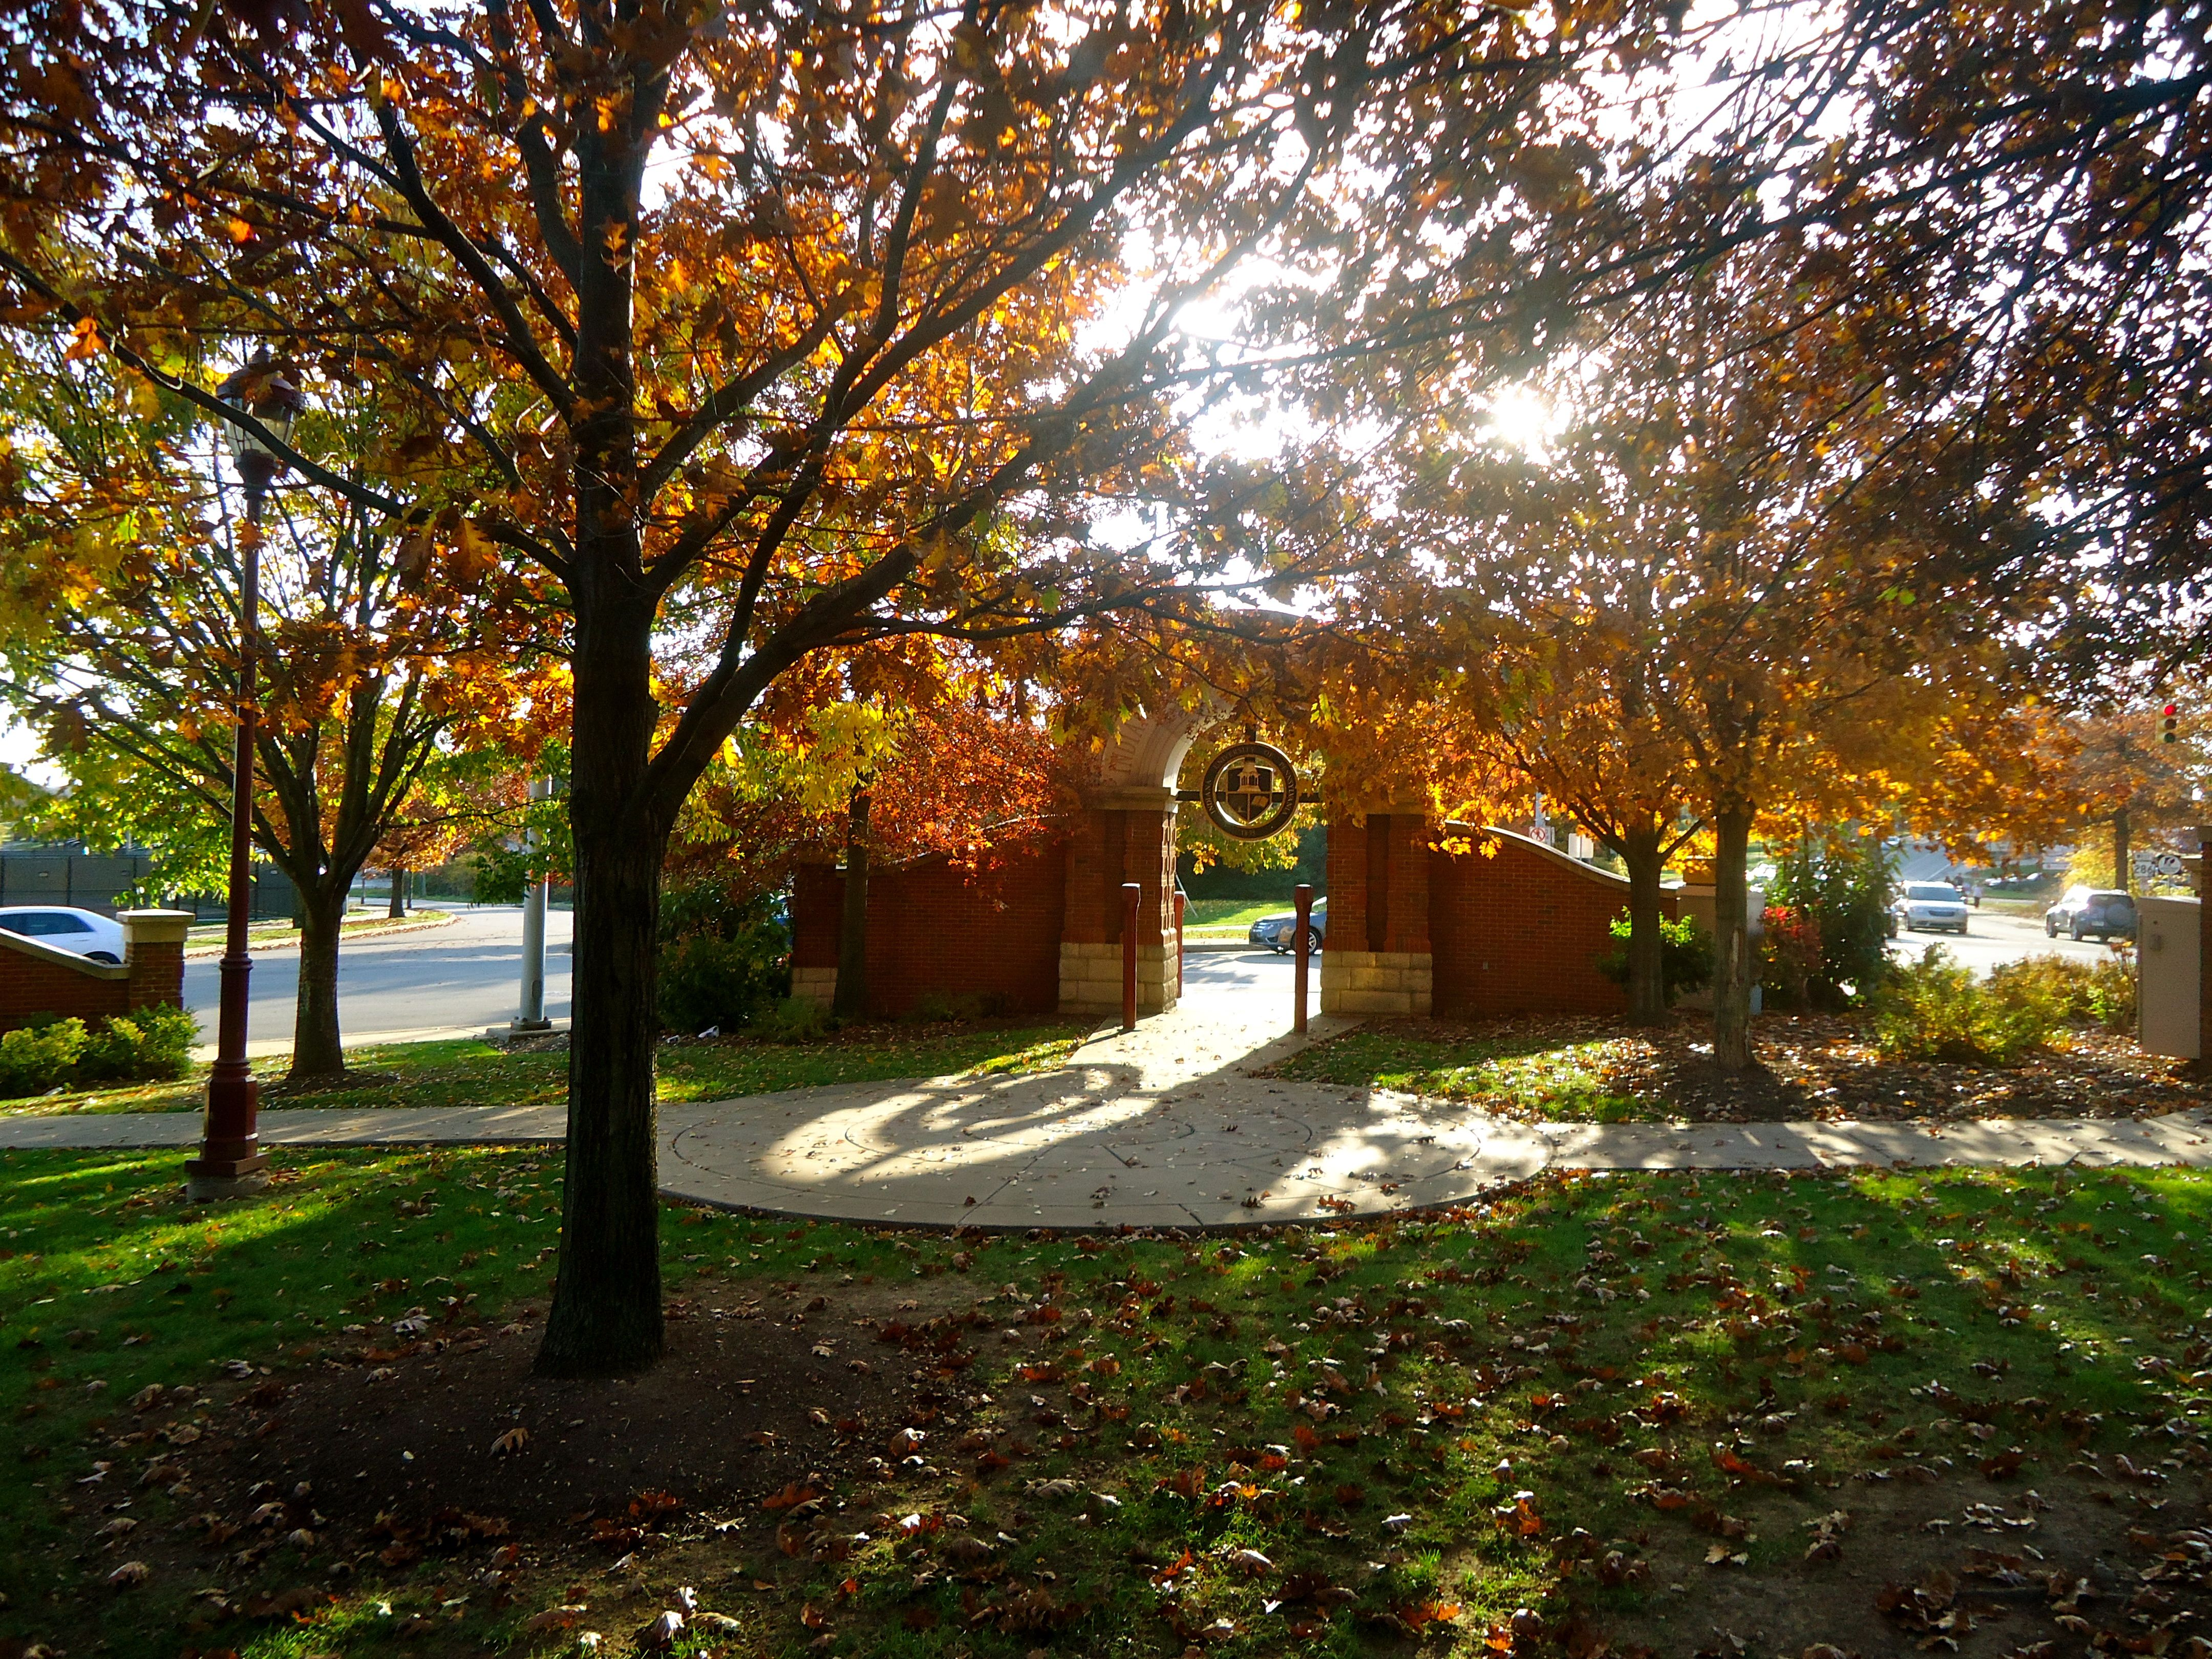 Beauty of IUP #Fall #IUP | Indiana university of pennsylvania, Places to  visit, Favorite places